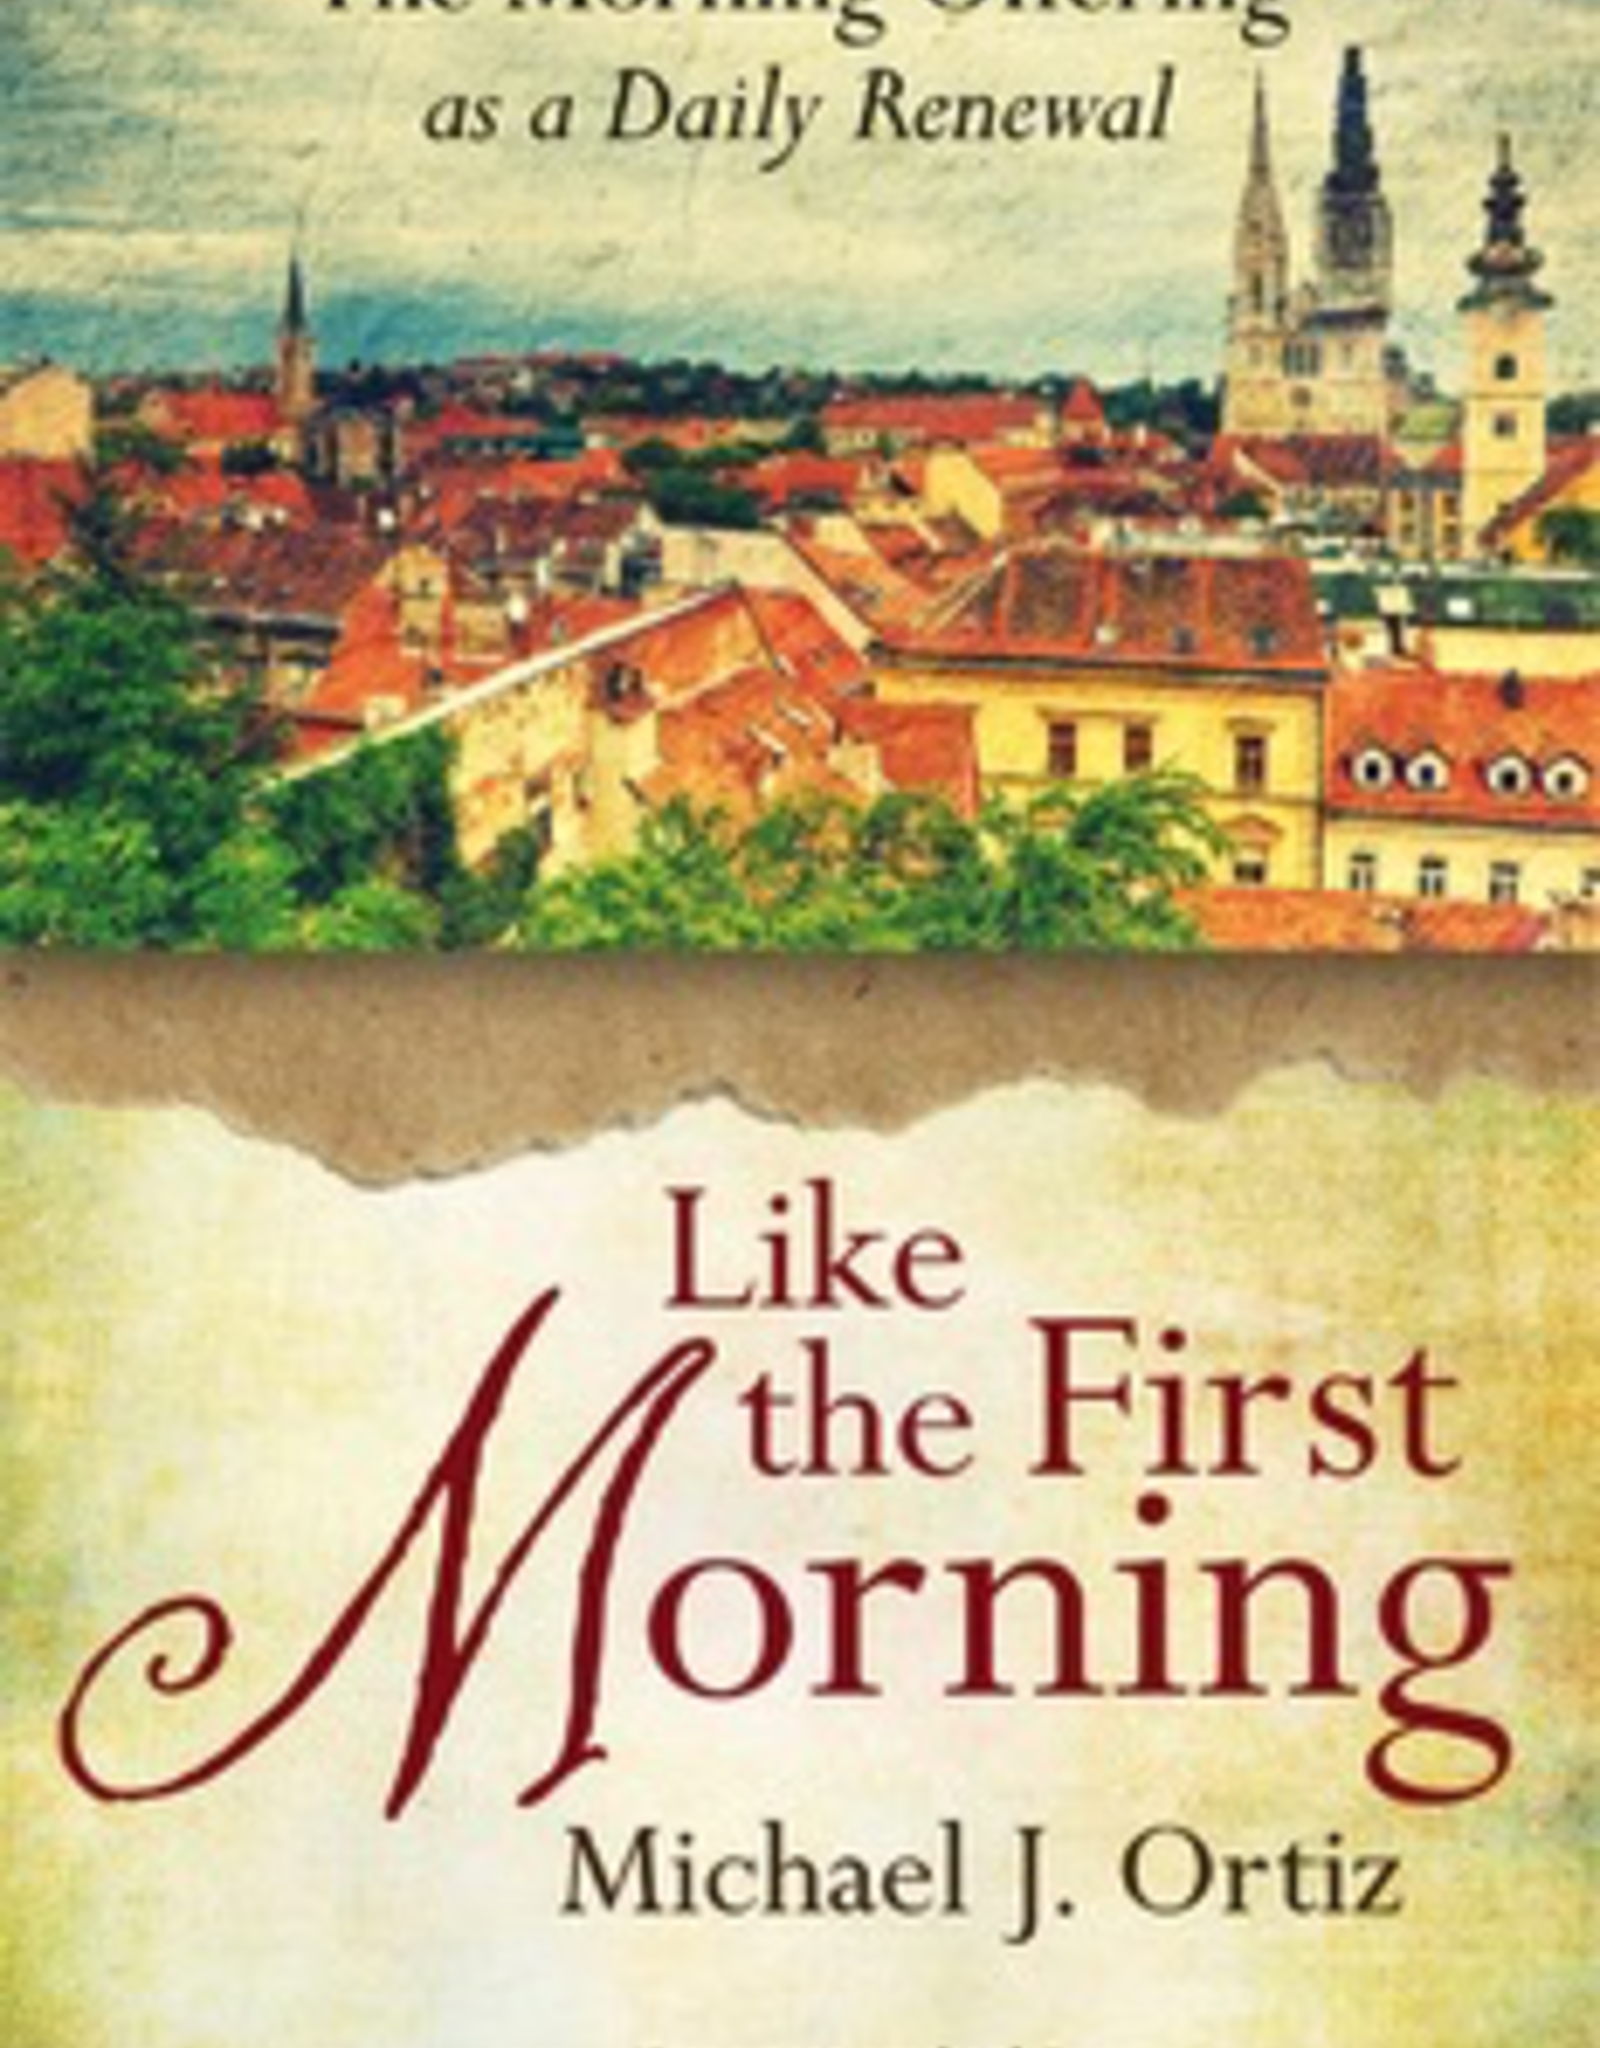 Ave Maria Press Like the First Morning:  The Morning Offering as a Daily Renewal, by Michael J. Ortiz (paperback)